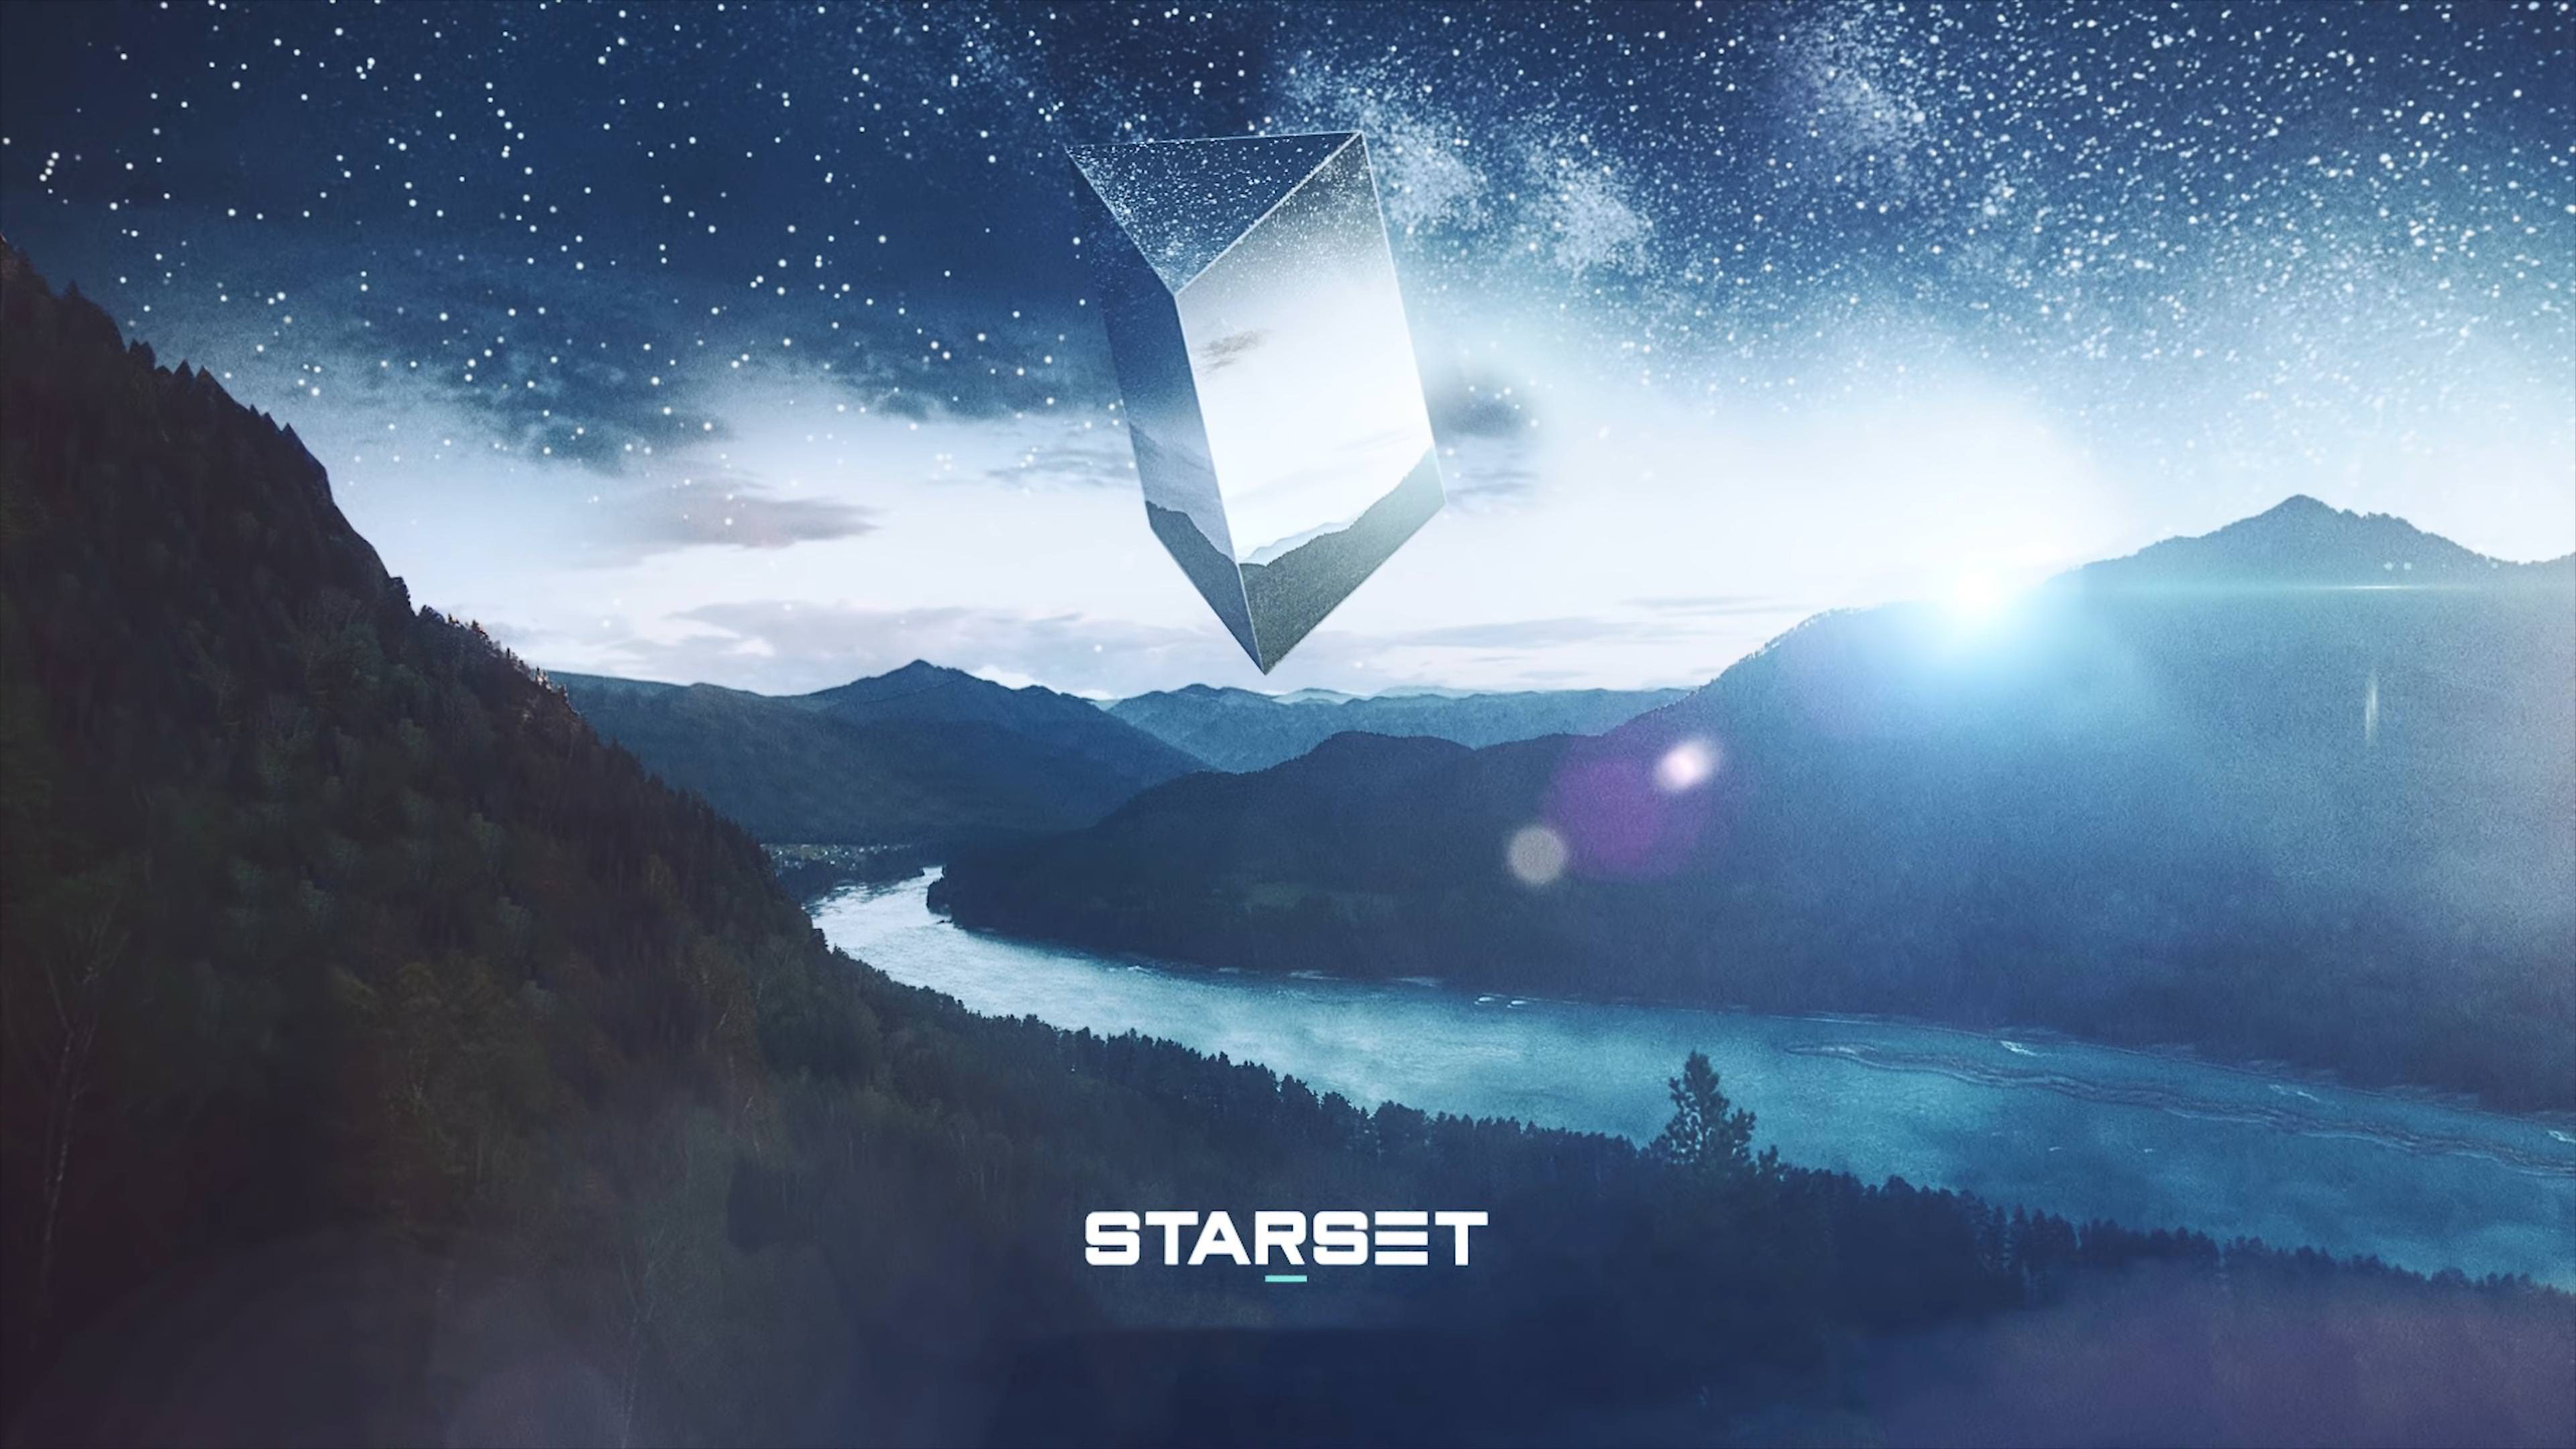 3840x2160 Starset wallpaper (Satellite acoustic version) - Imgur